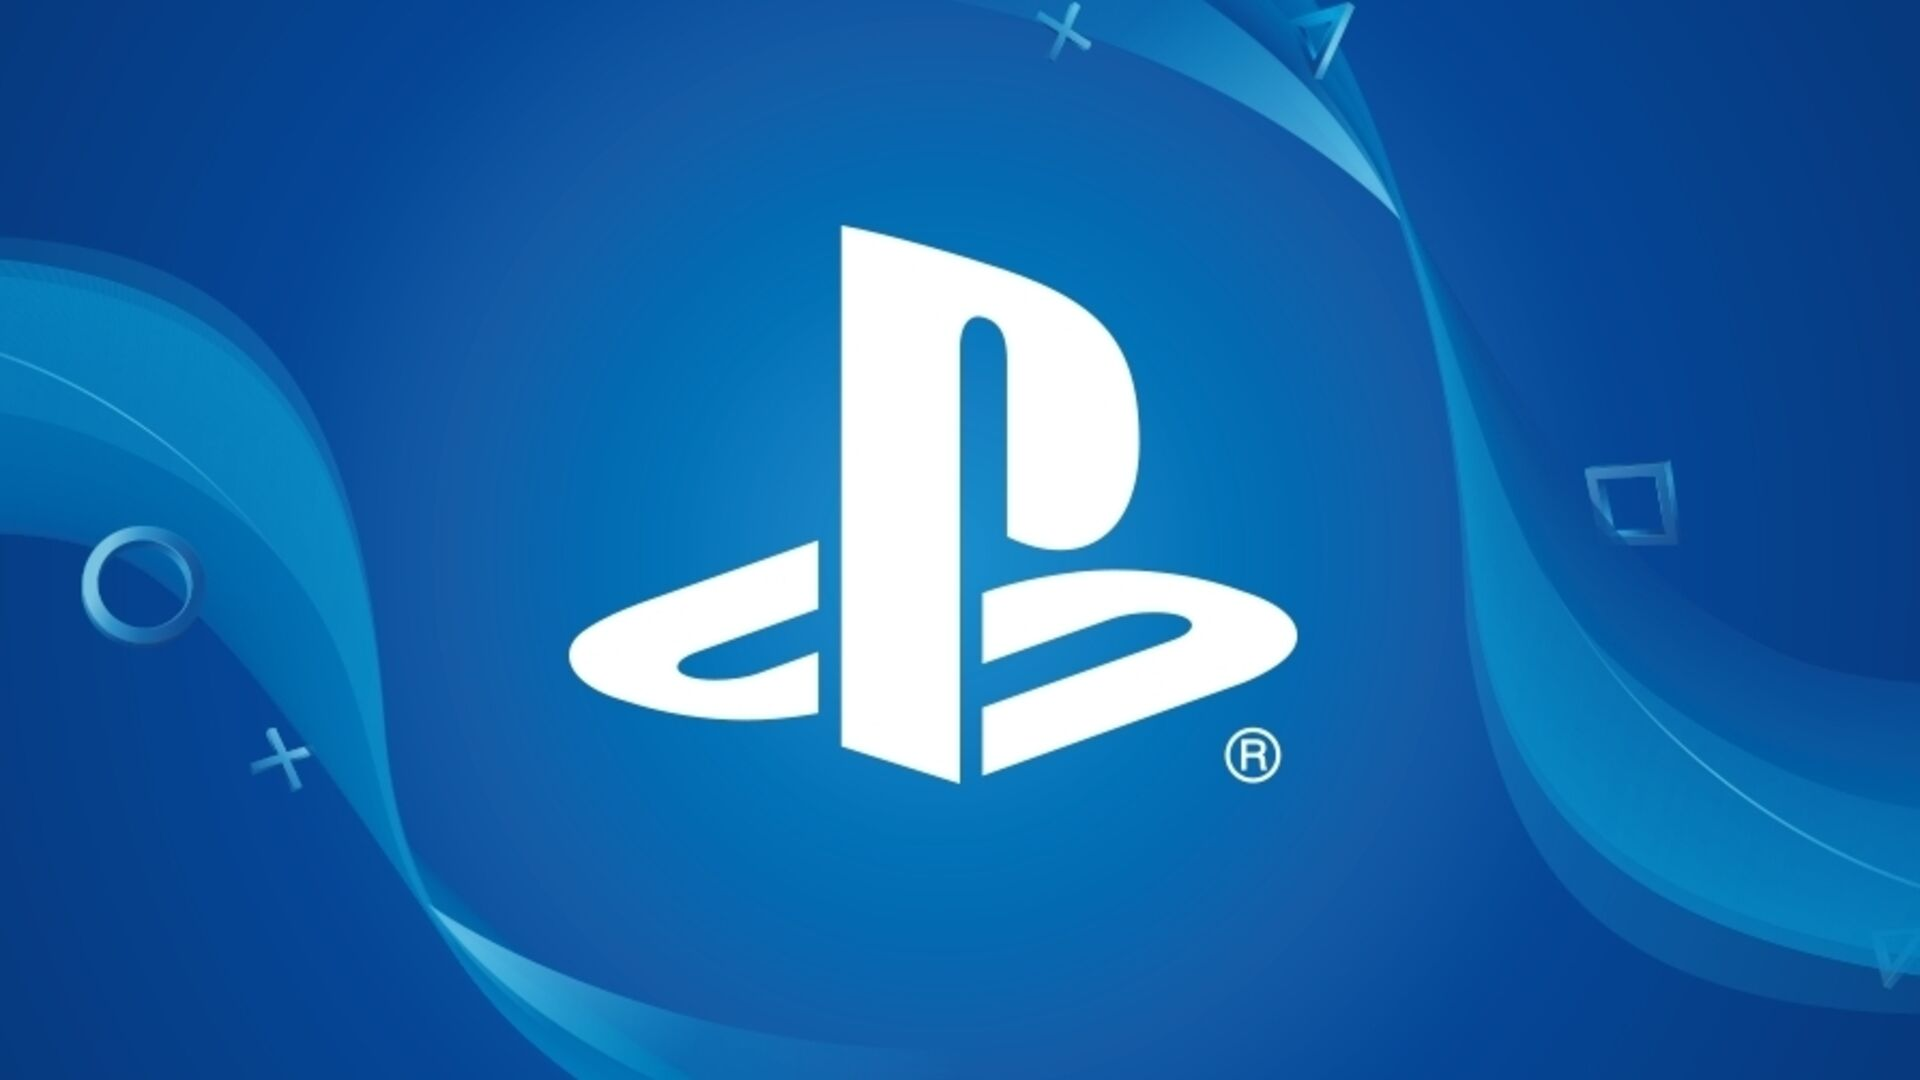 Sony no longer bans accounts for having offensive PSN IDs